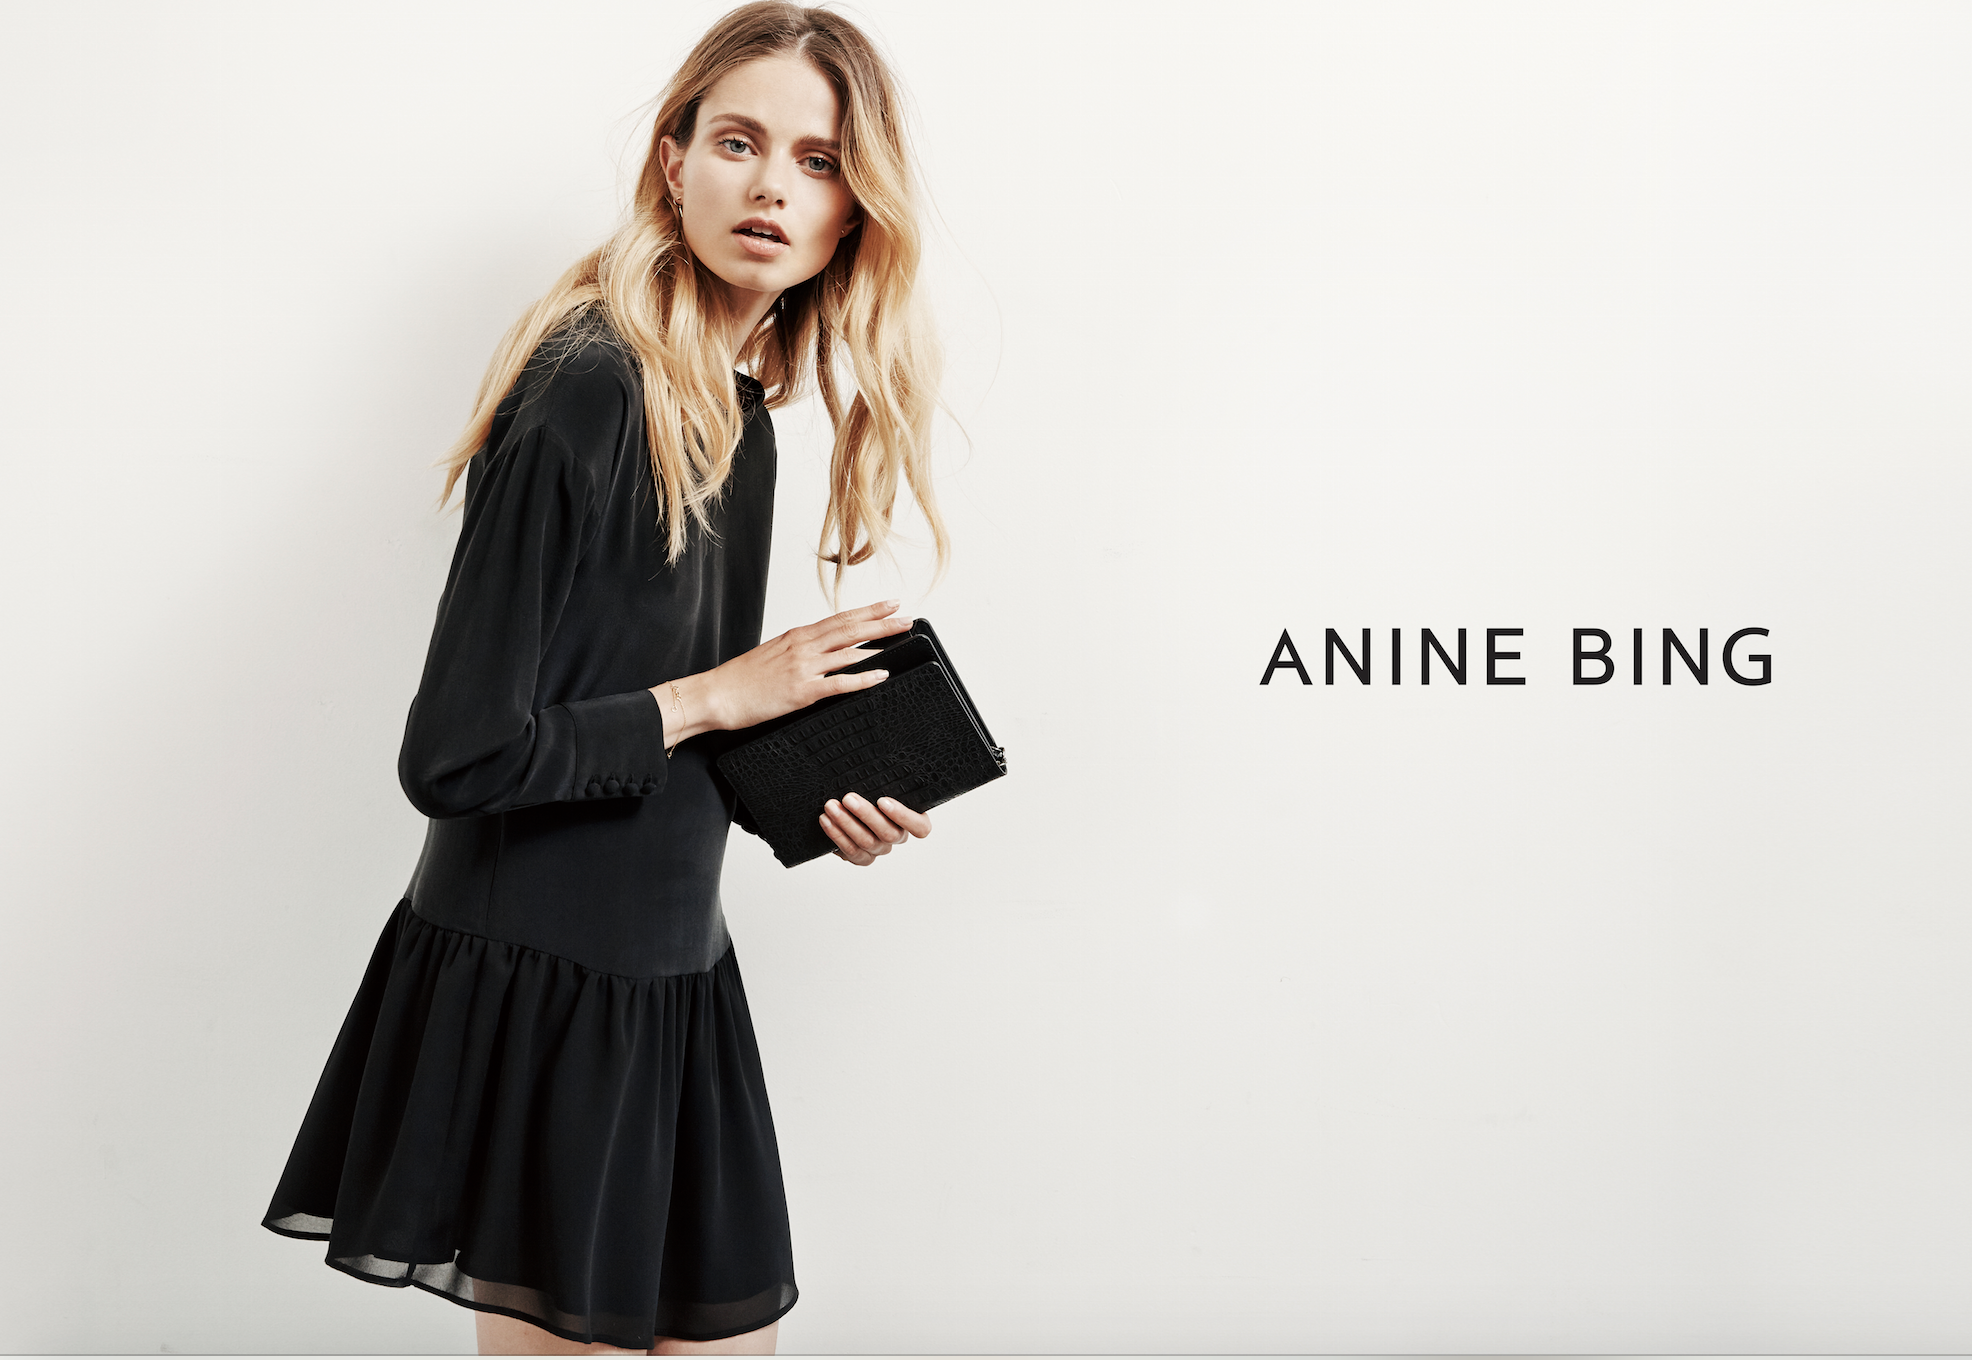 #ANINEBING August #Campaign